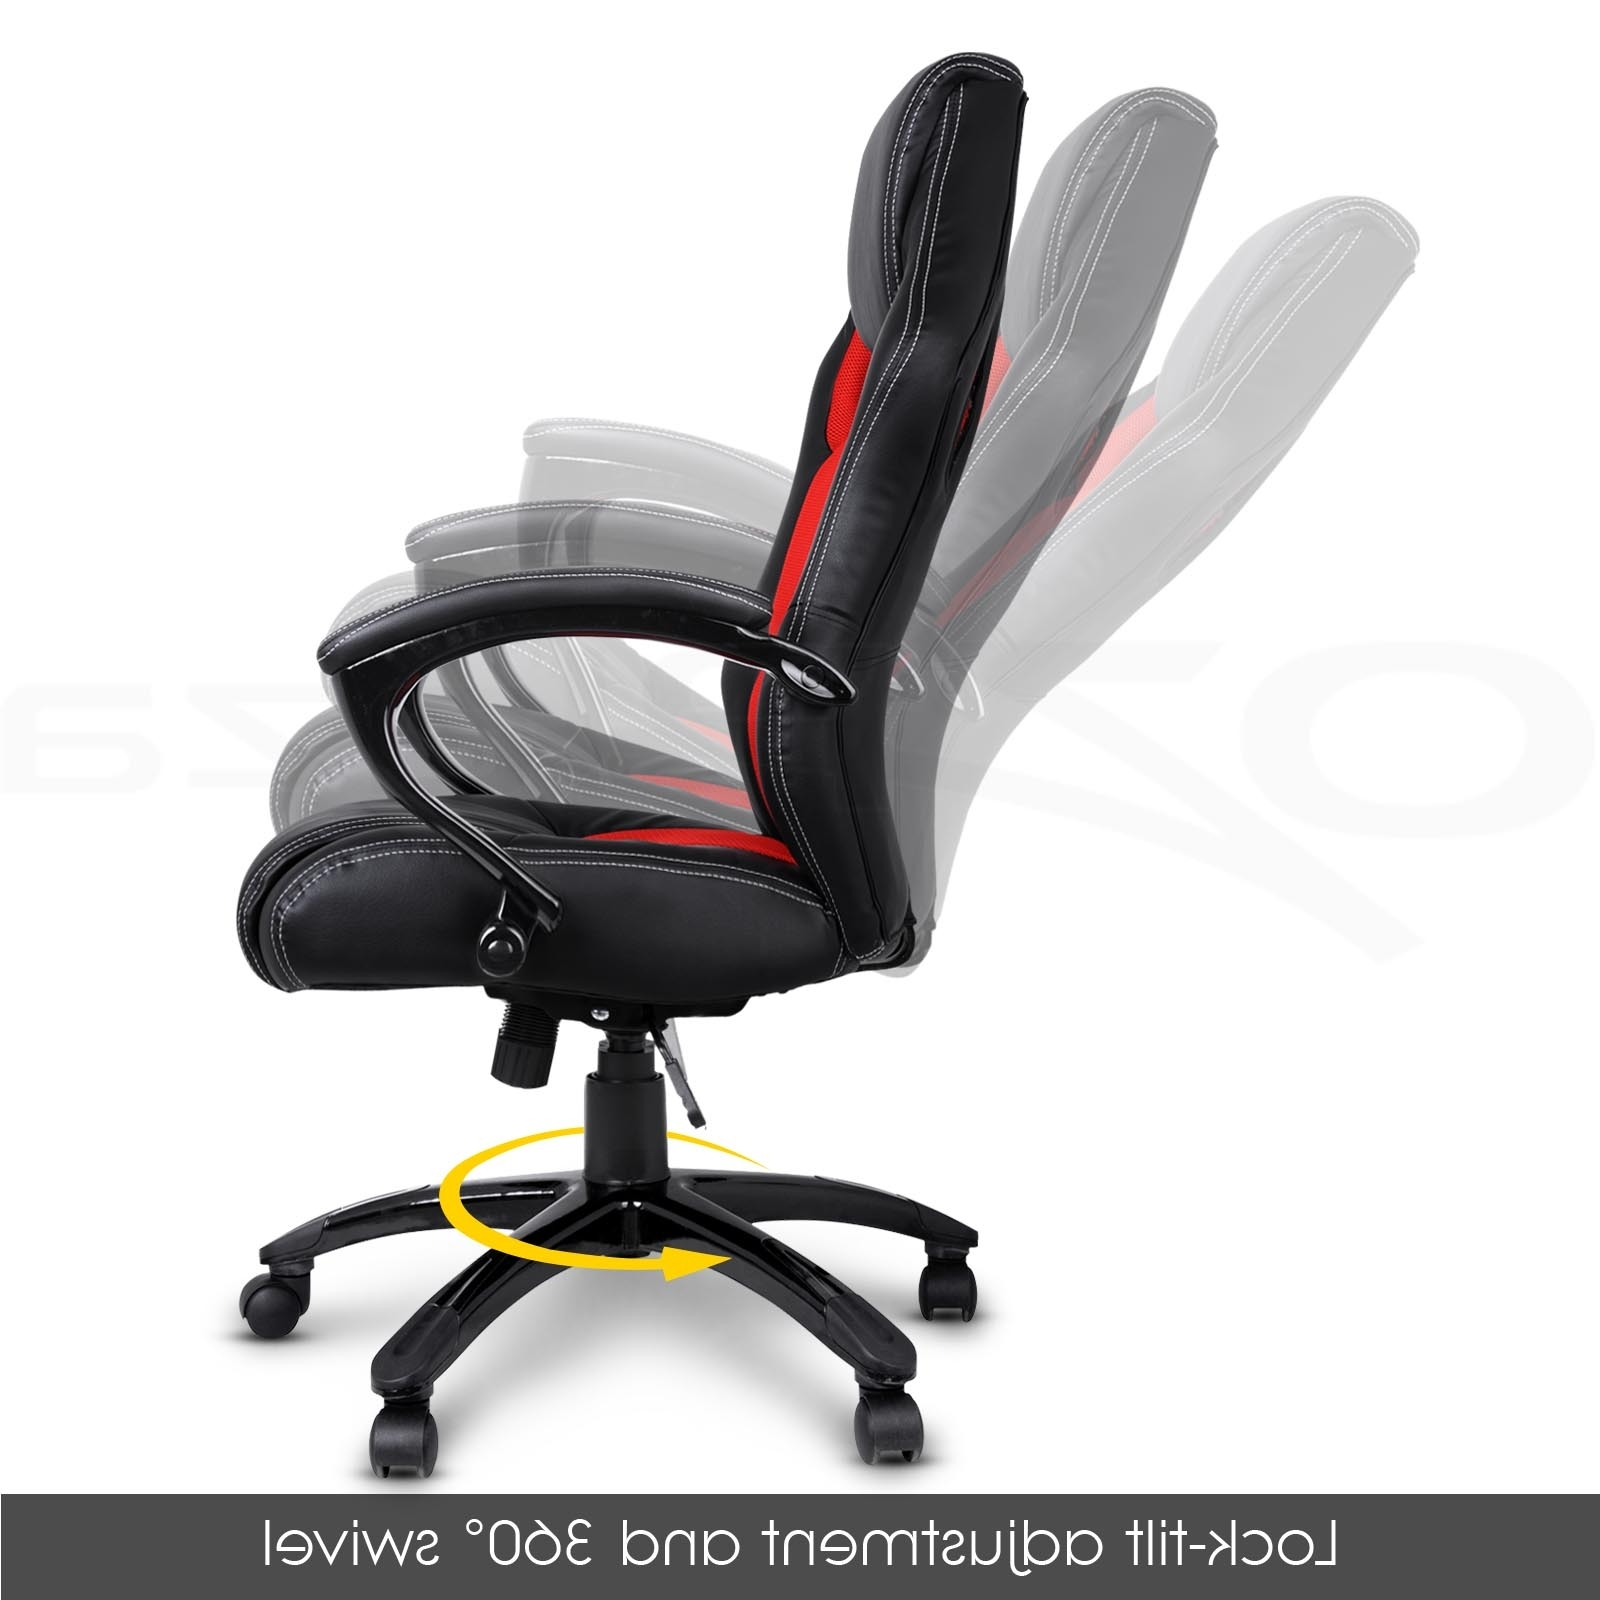 Executive Office Racing Chairs With Regard To Current Lovely Racing Seat Office Chair (12 Photos) (View 18 of 20)